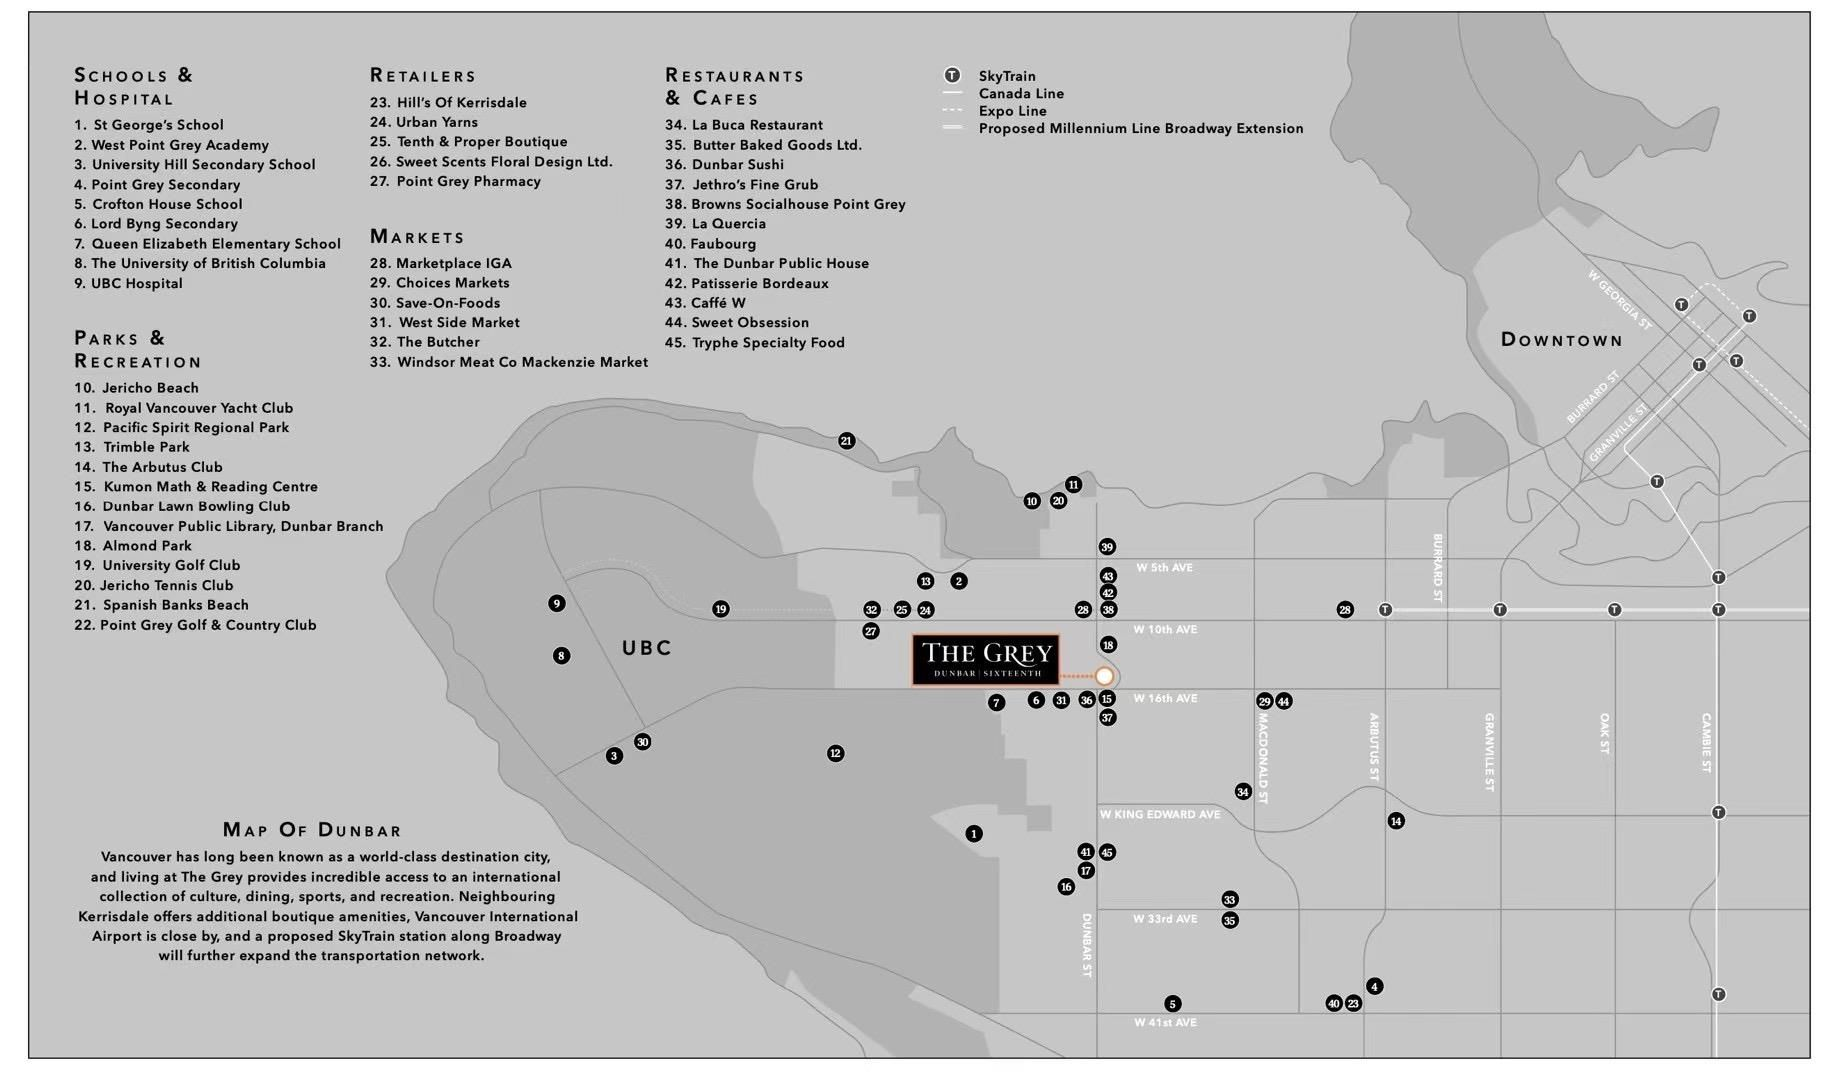 """Main Photo: 3151 DUNBAR Street in Vancouver: Dunbar Retail for sale in """"The Grey"""" (Vancouver West)  : MLS®# C8040356"""